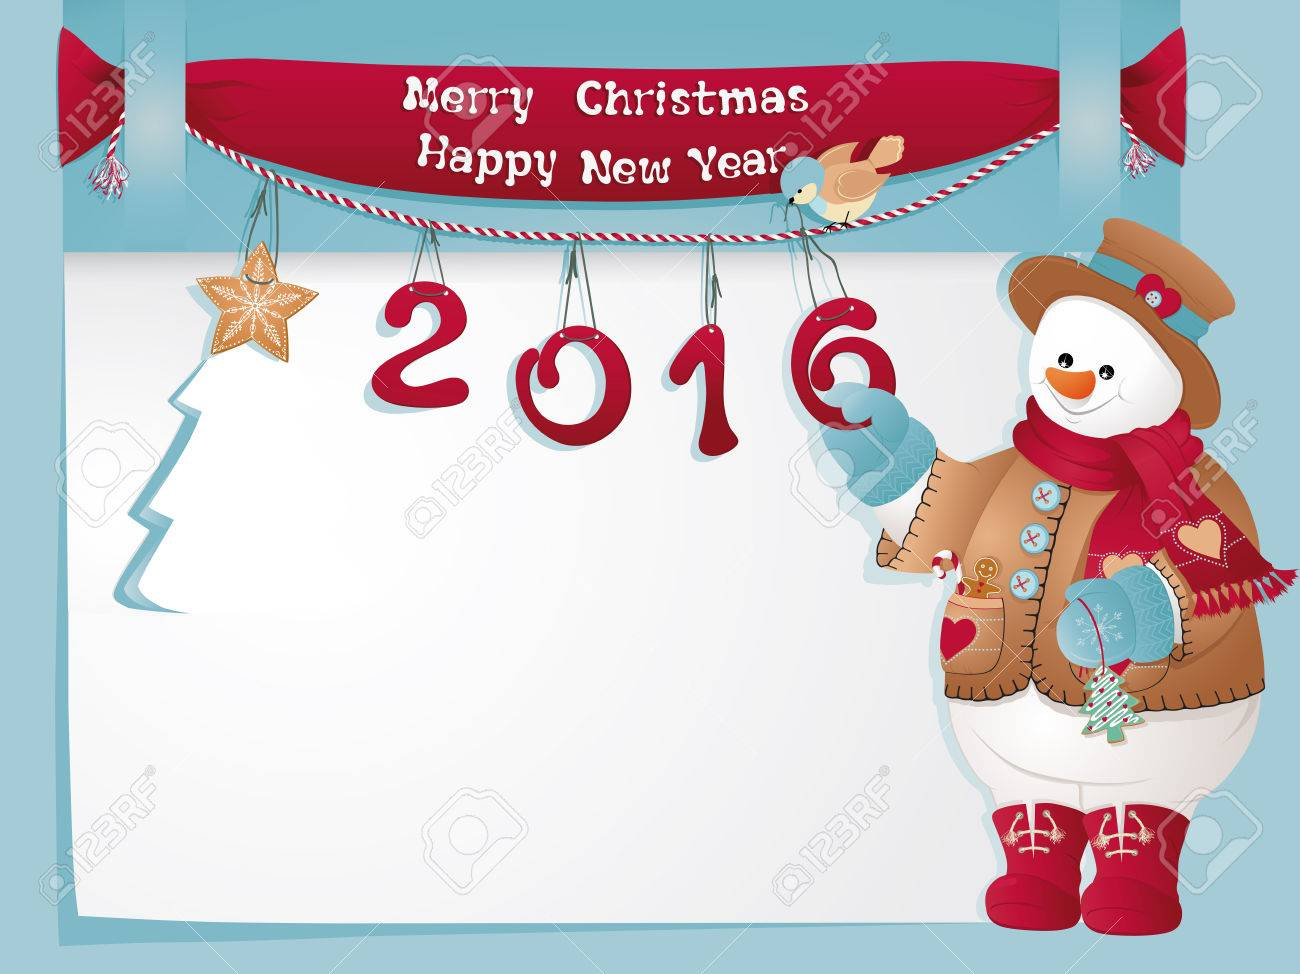 Funny Christmas Card With Snowman Merry Christmas And Happy